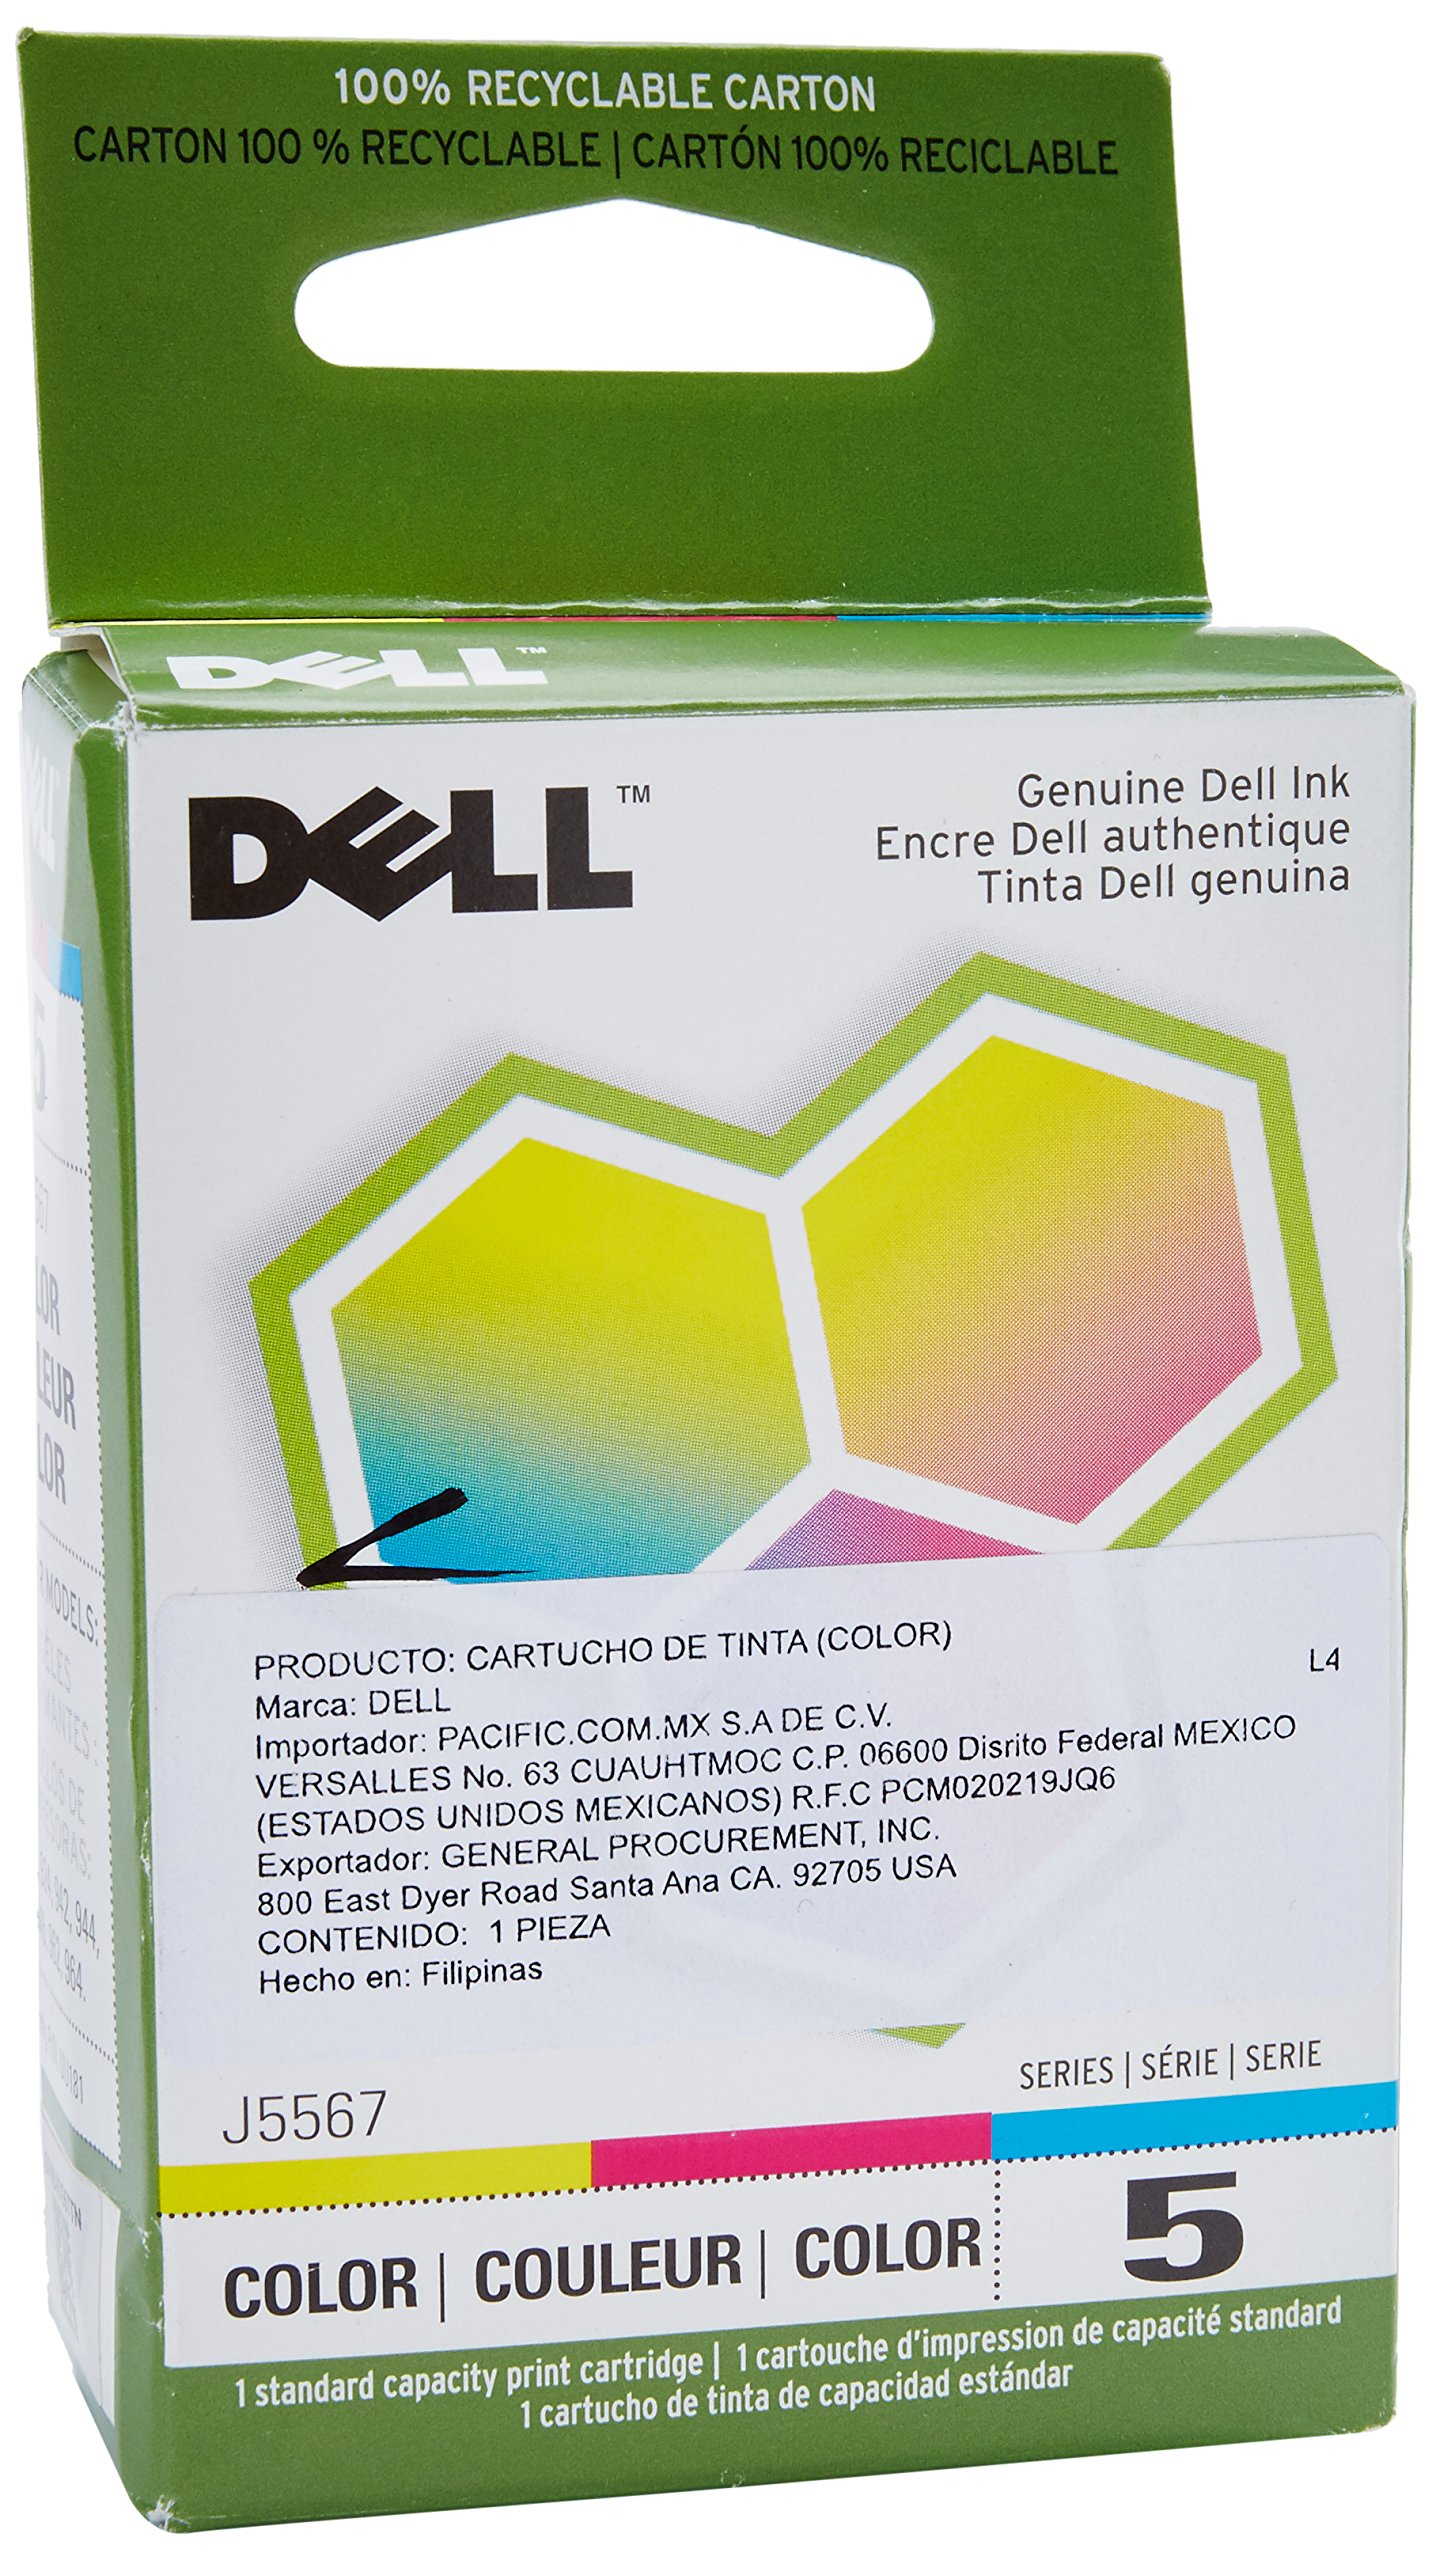 Dell Computer J5567 5 Standard Capacity Color Ink Cartridge for 922/924/942/944/946/962/964